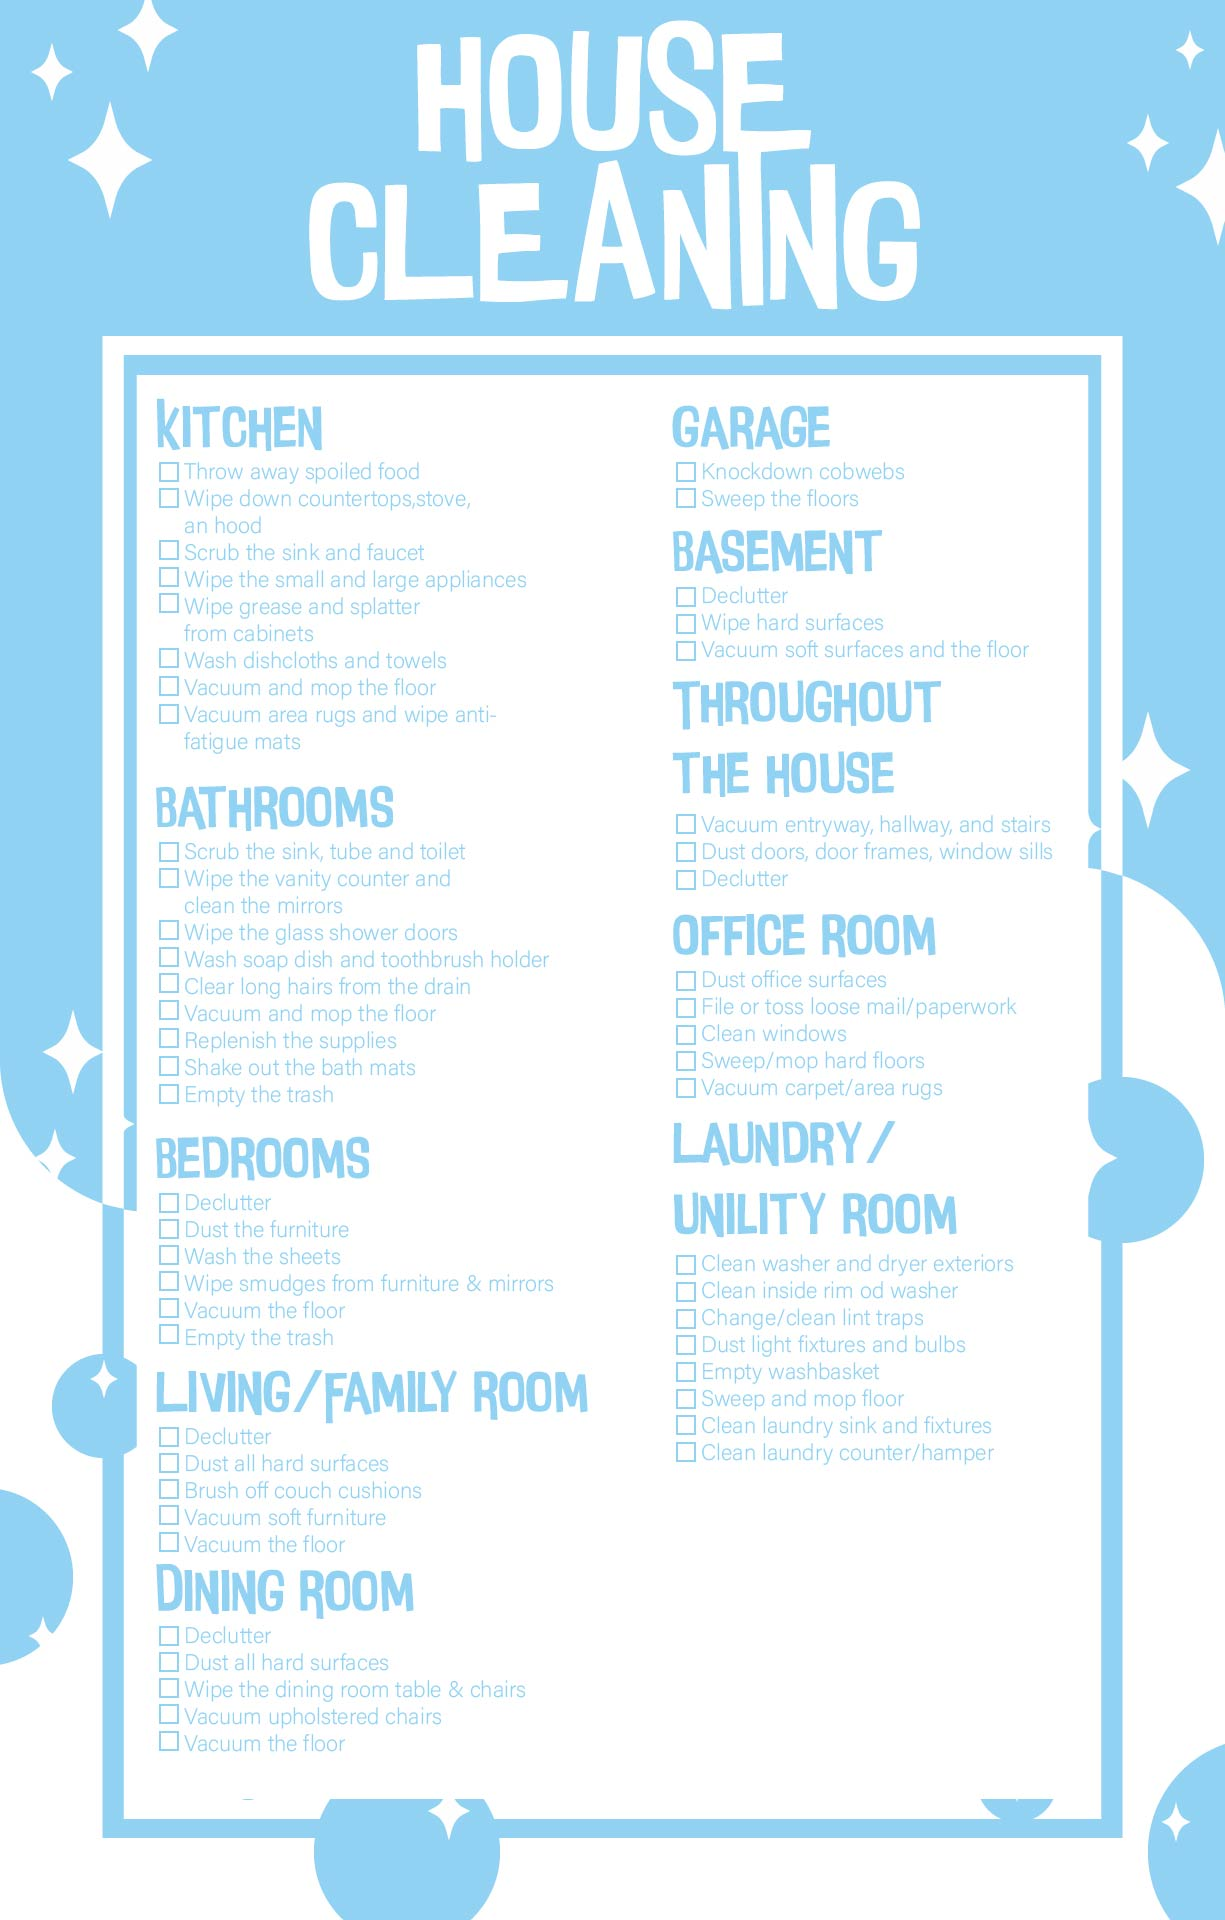 Residential House Cleaning Checklist